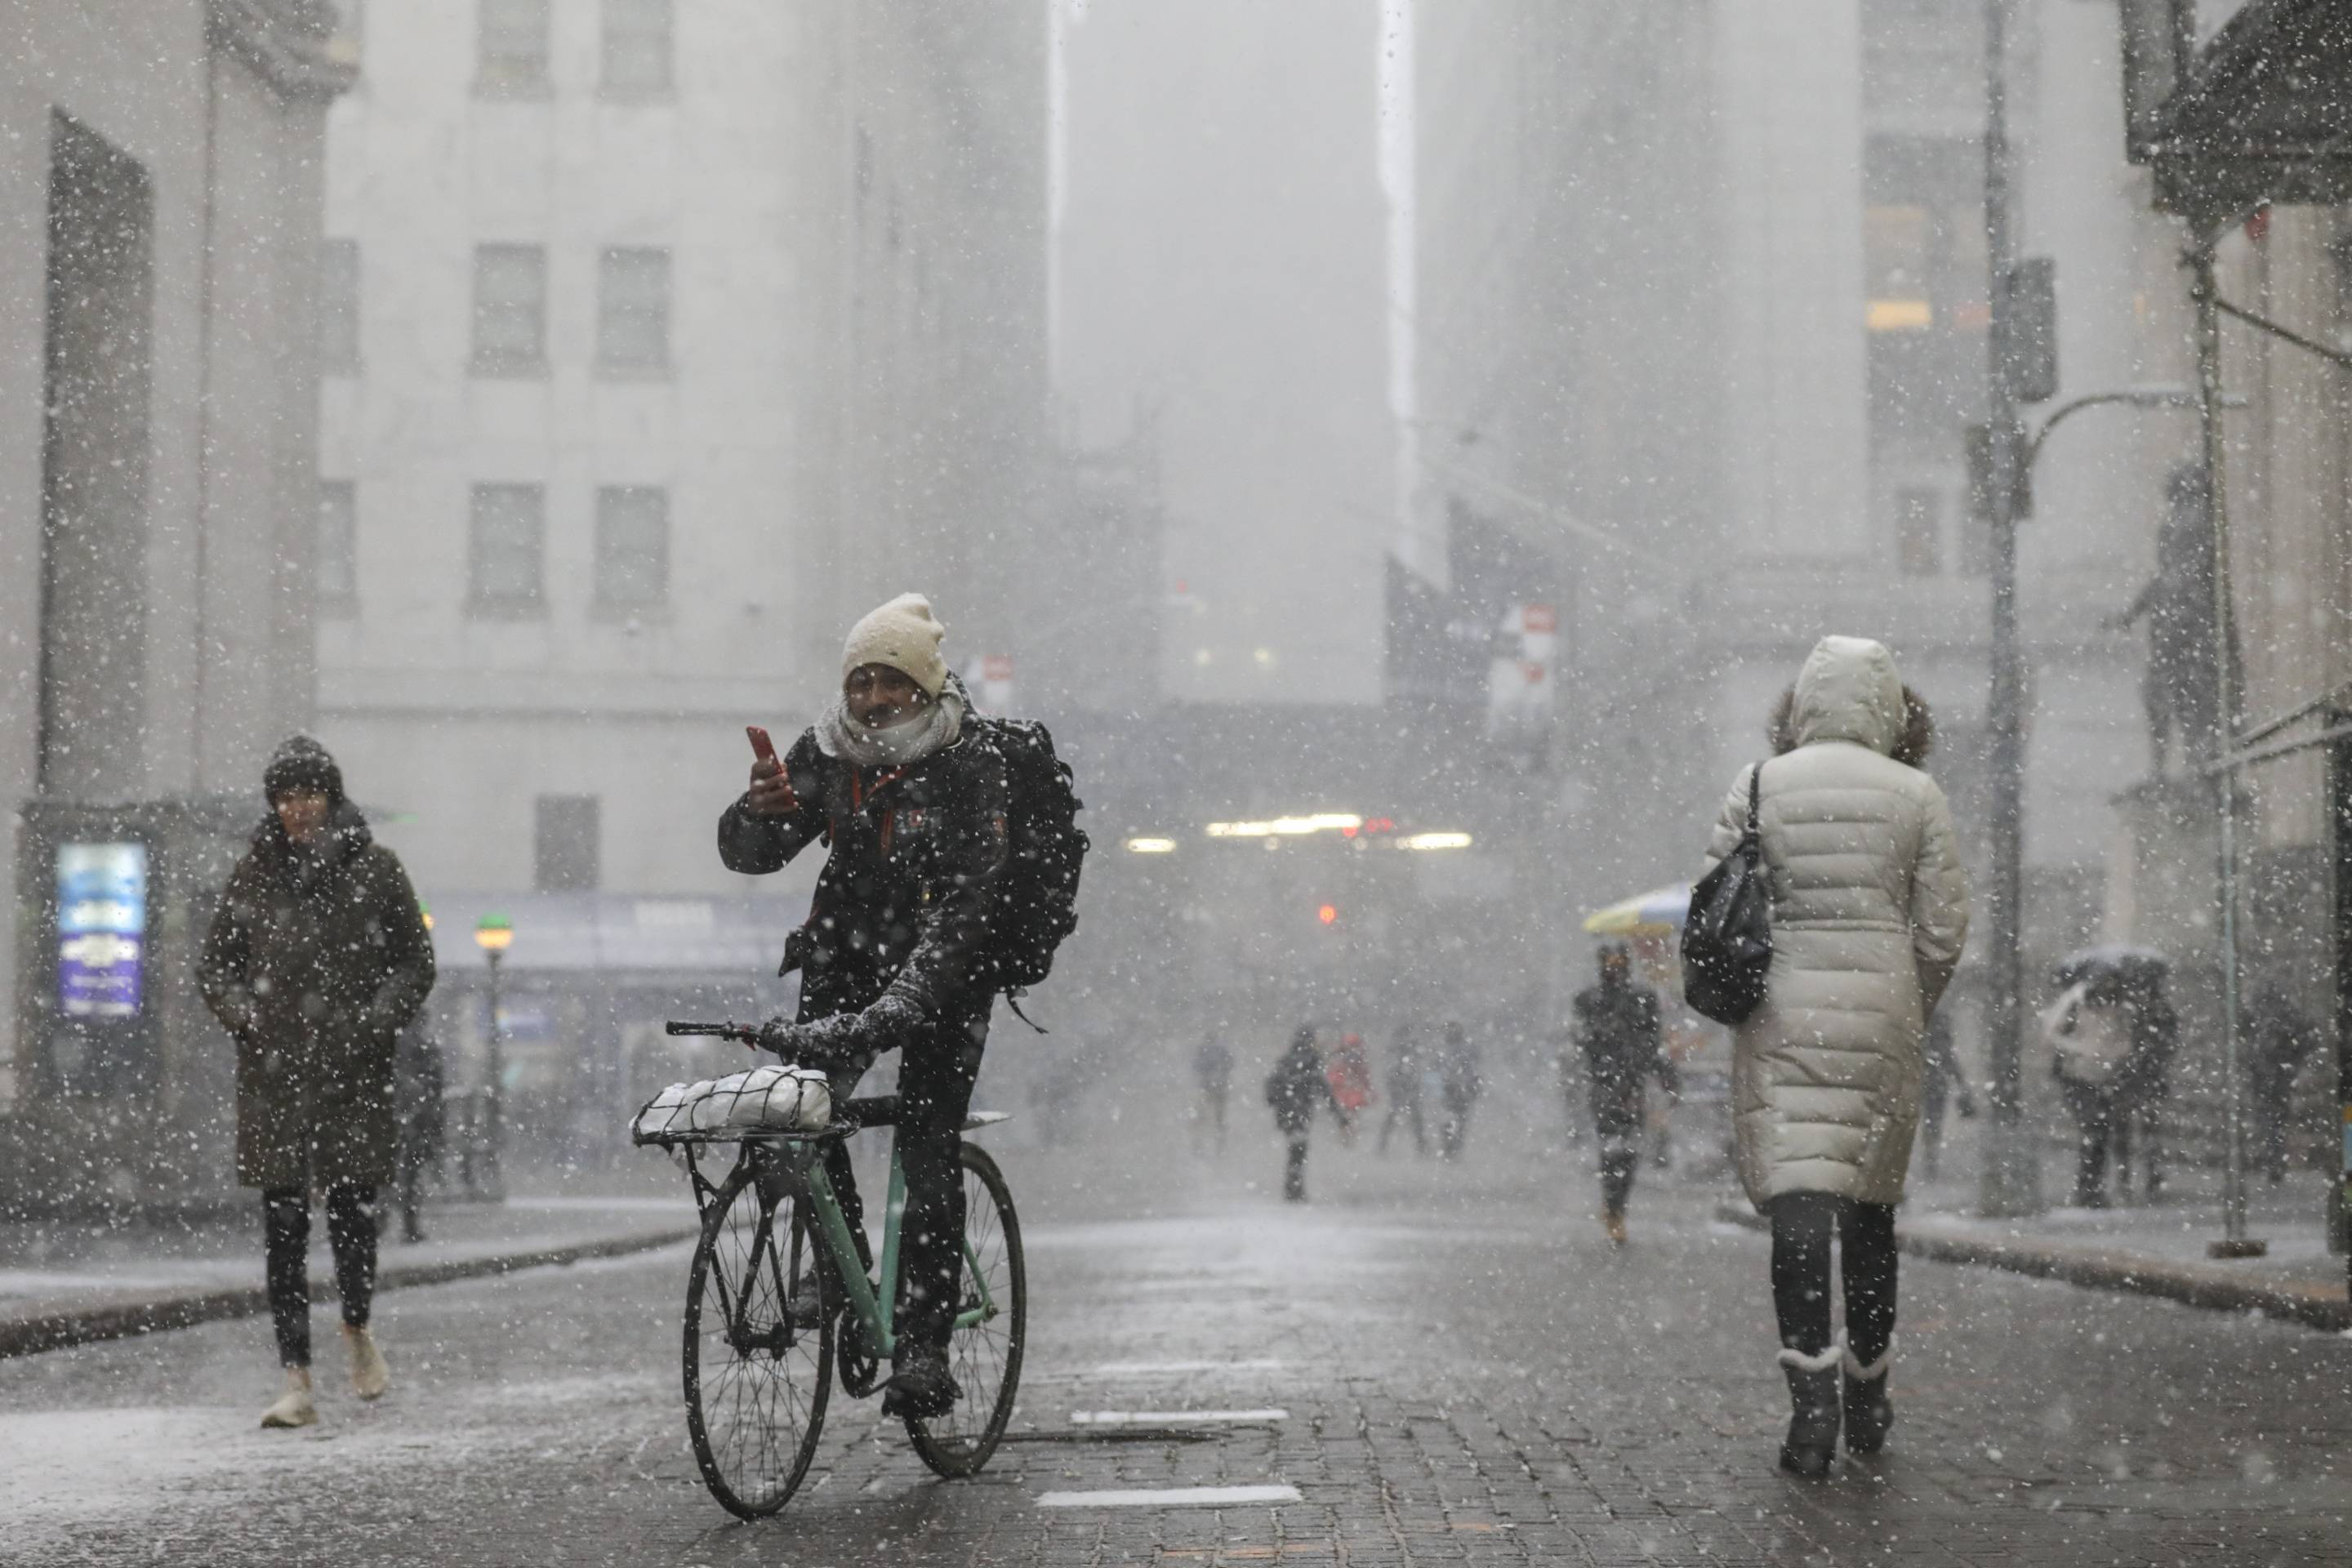 Polar Vortex From Upper Midwest Brings Extreme Cold Temperatures To New York City